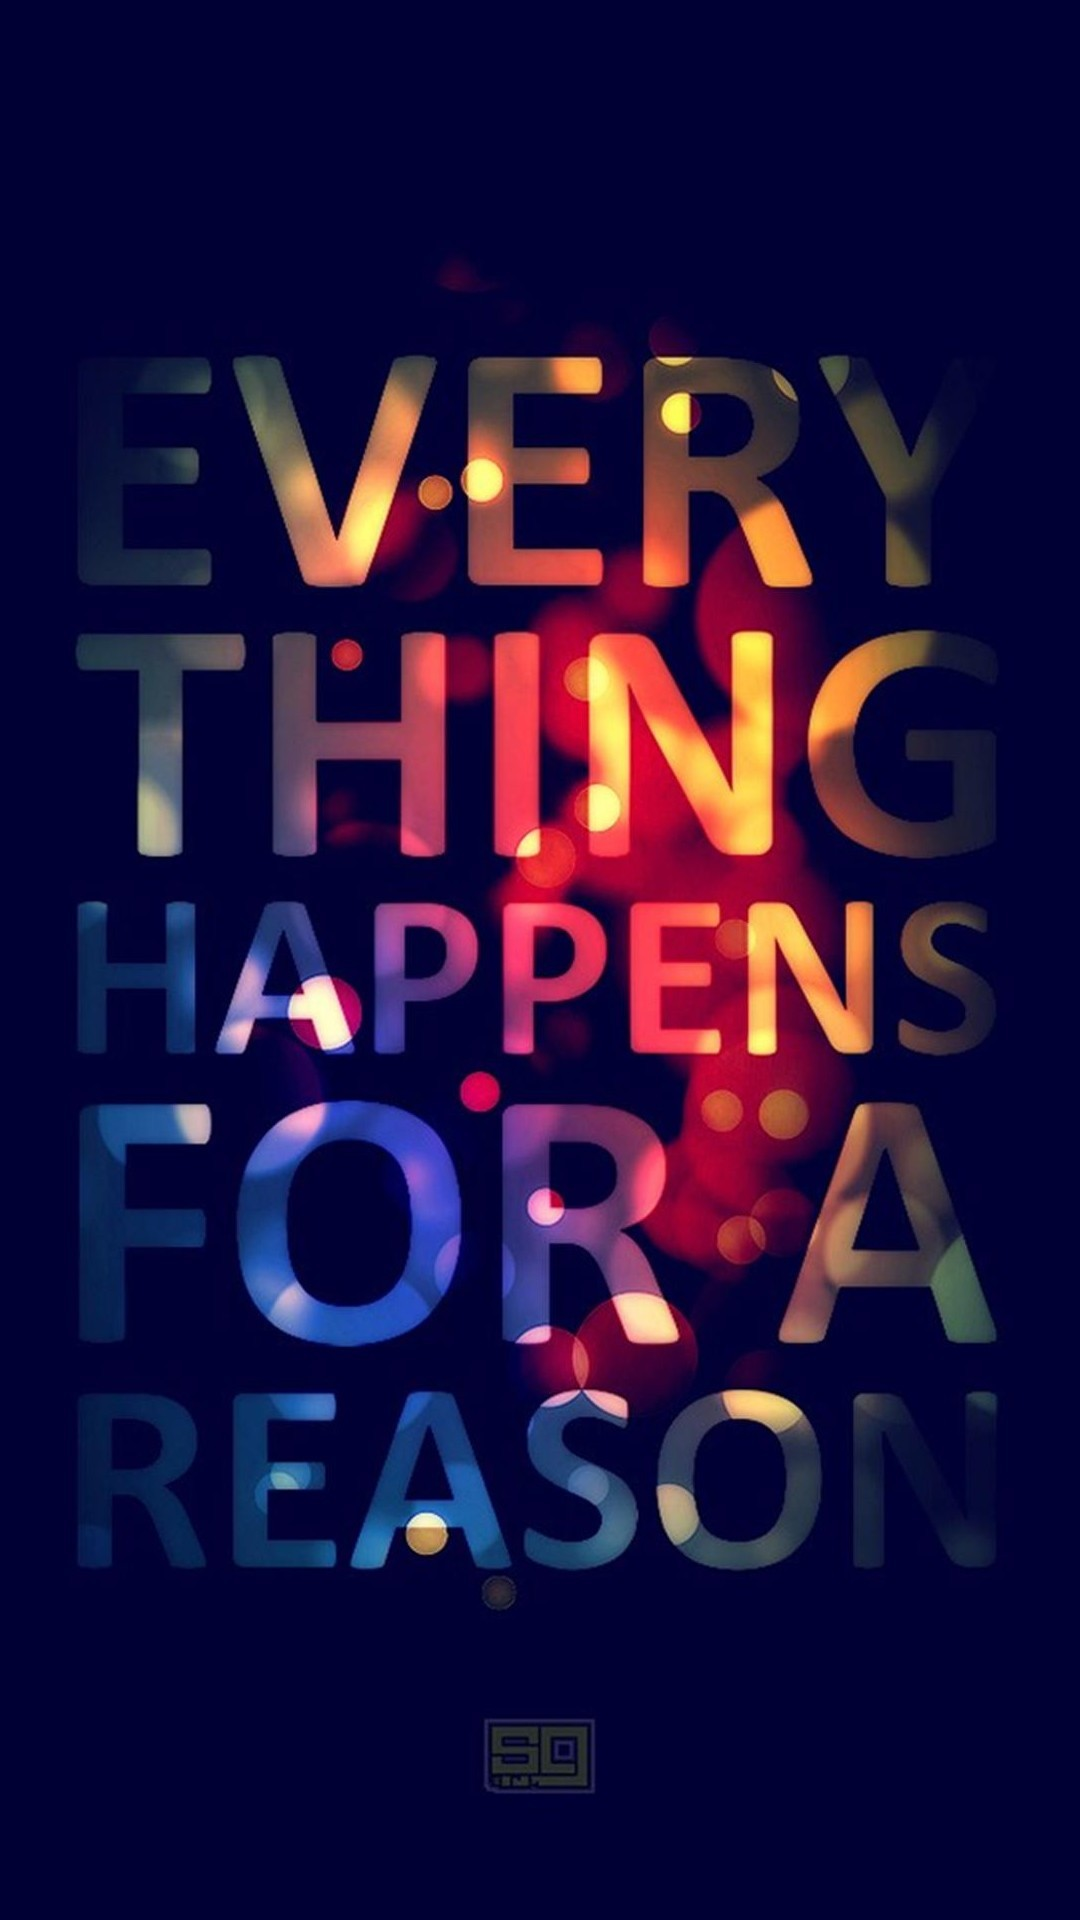 Galaxy Quotes Wallpaper 66 Images